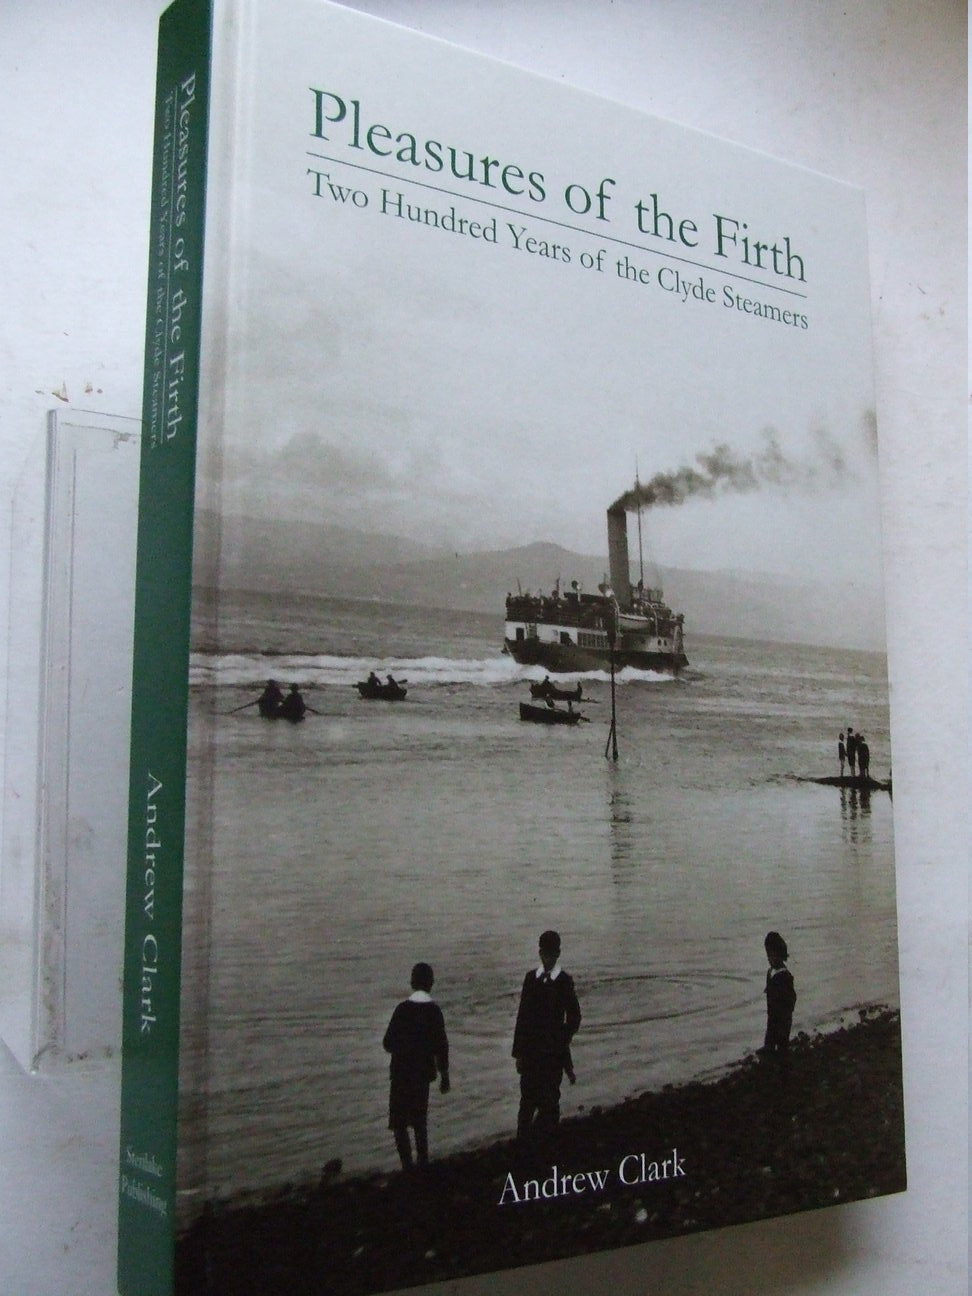 Pleasures of the Firth, two hundred years of the Clyde steamers